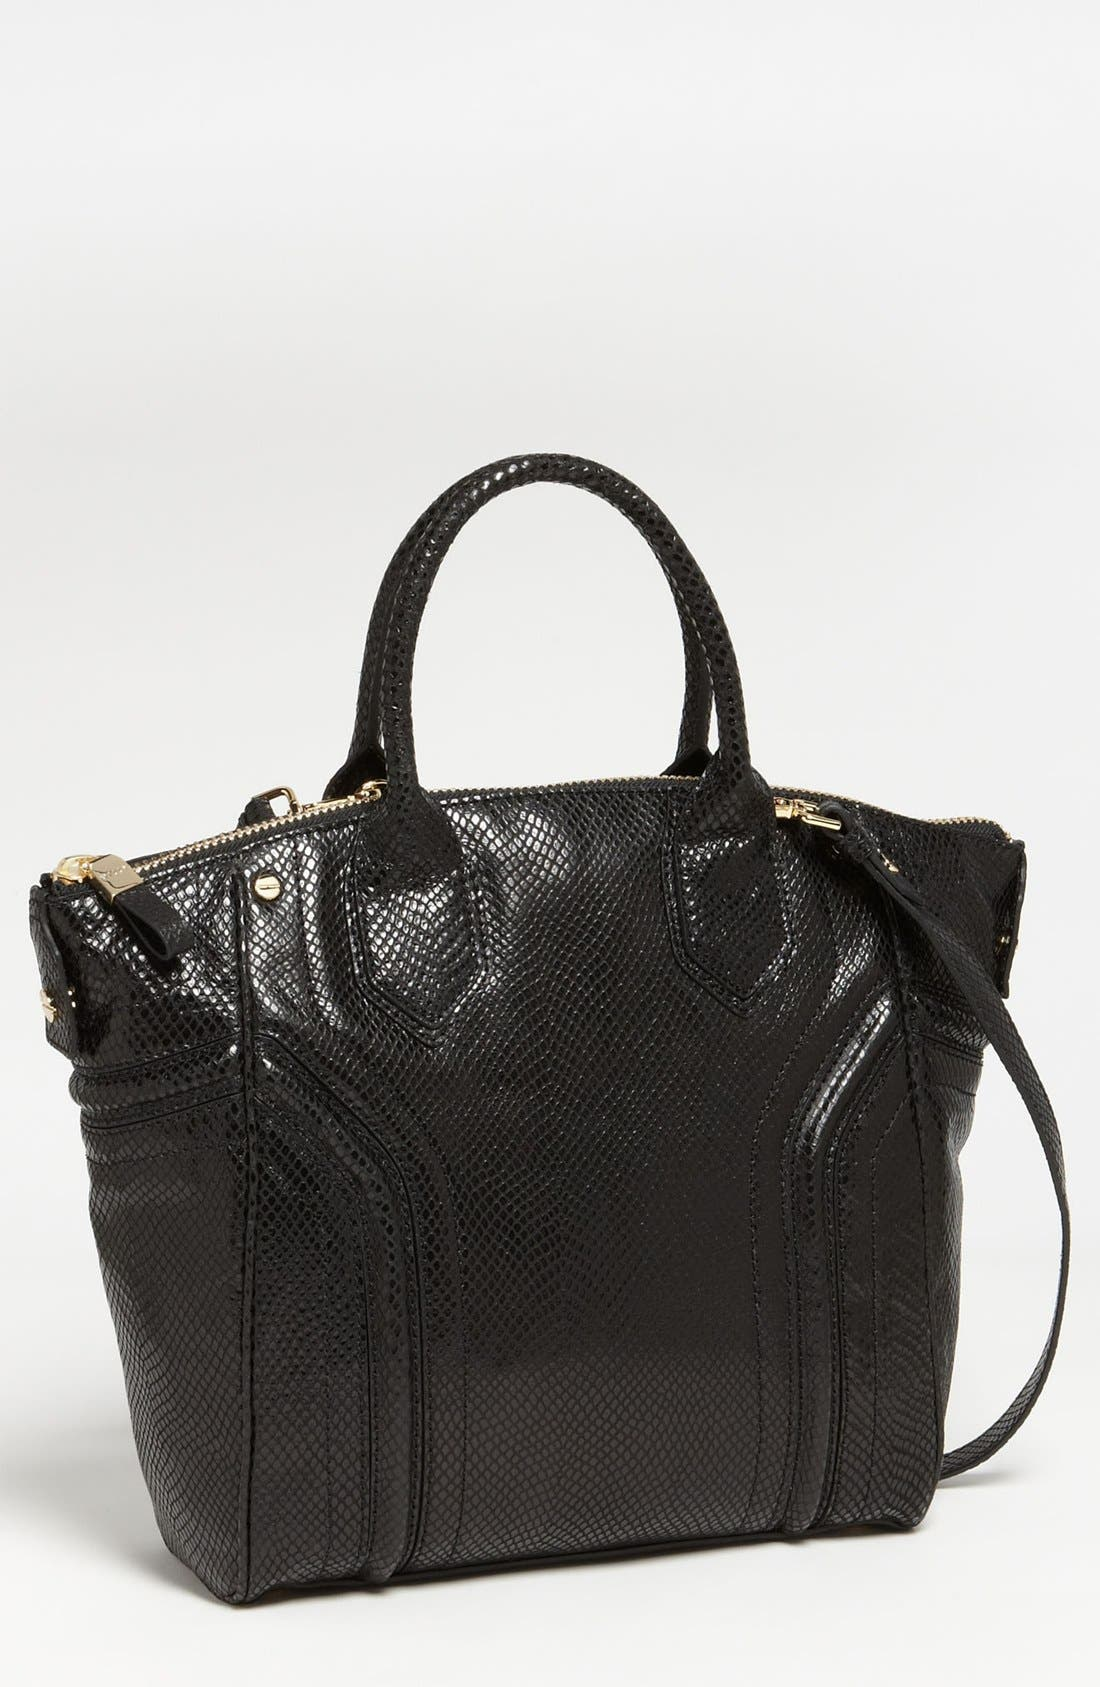 Main Image - Milly 'Zoey' Snake Embossed Leather Tote